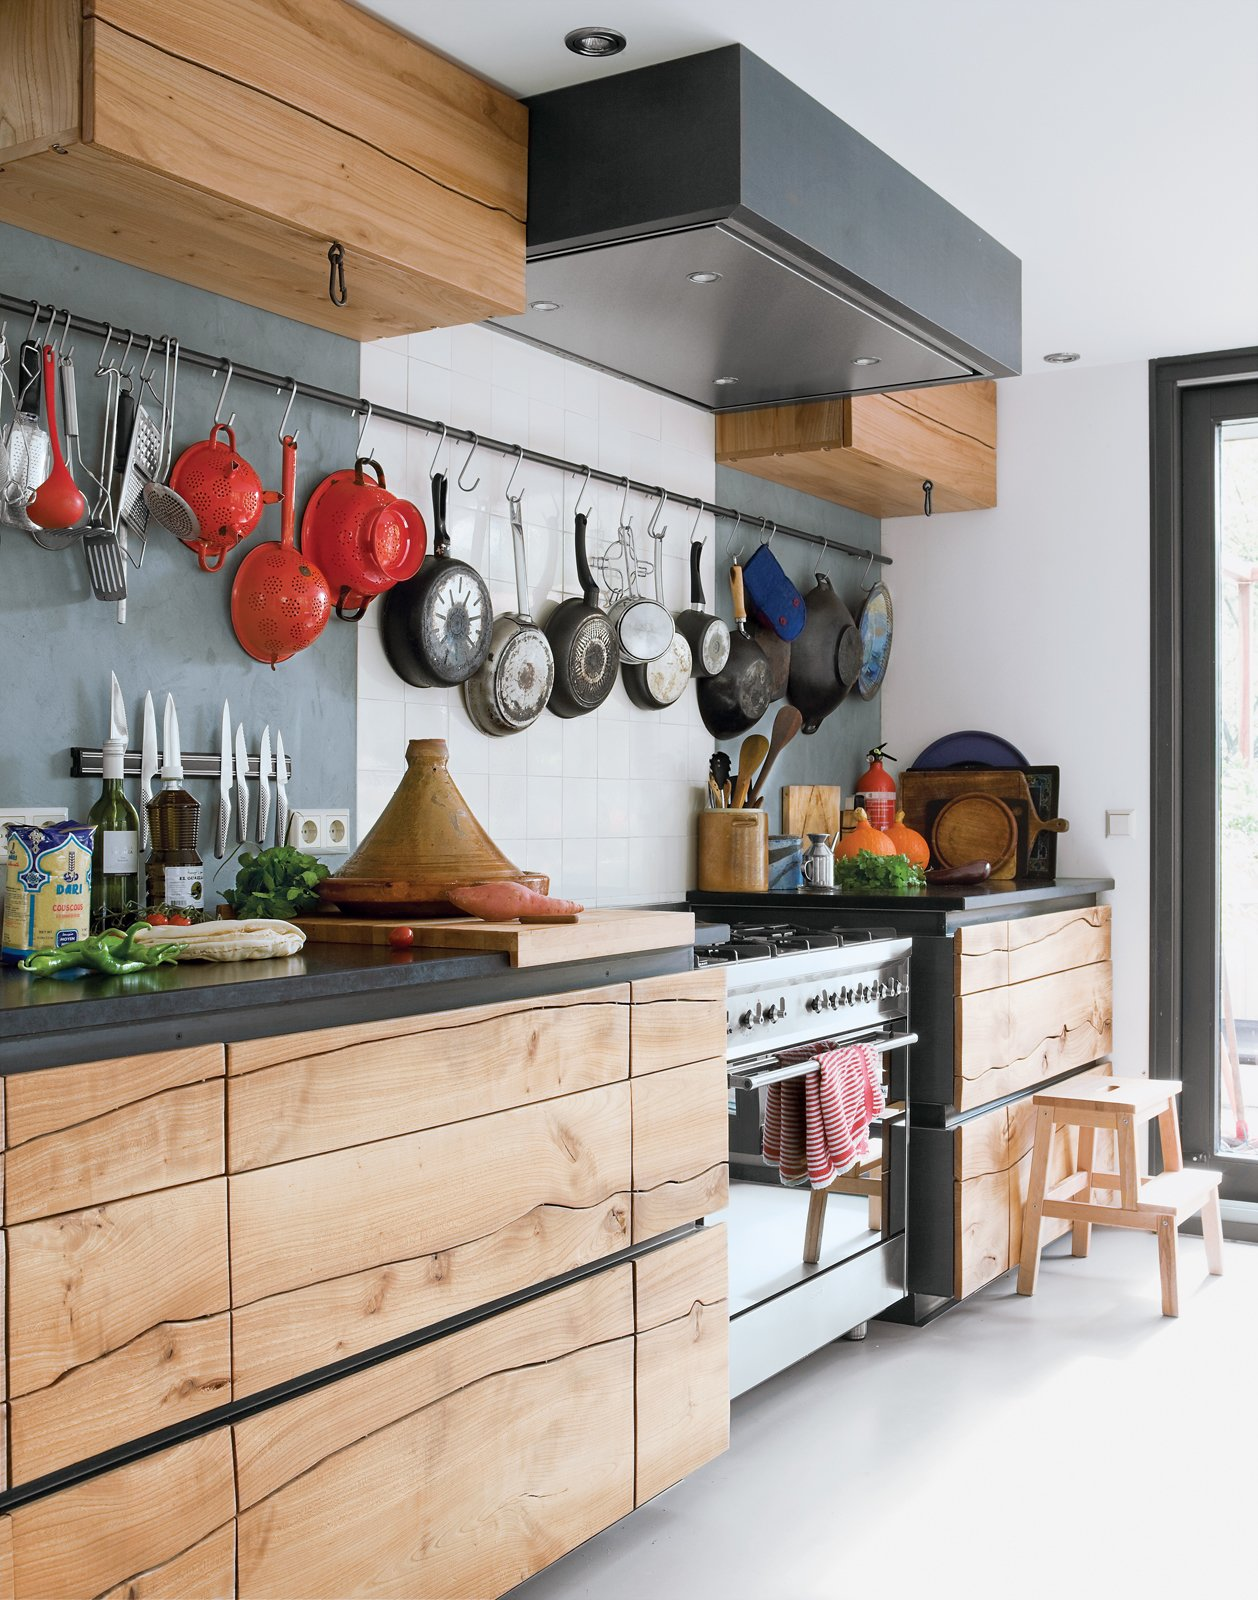 The original stain of wood cabinets can fade, yellow, or discolor over time, and varnish can also change in color and texture. A good sanding and new stain, oil, or other treatment can give old wood cabinets a new life—but it takes some work!